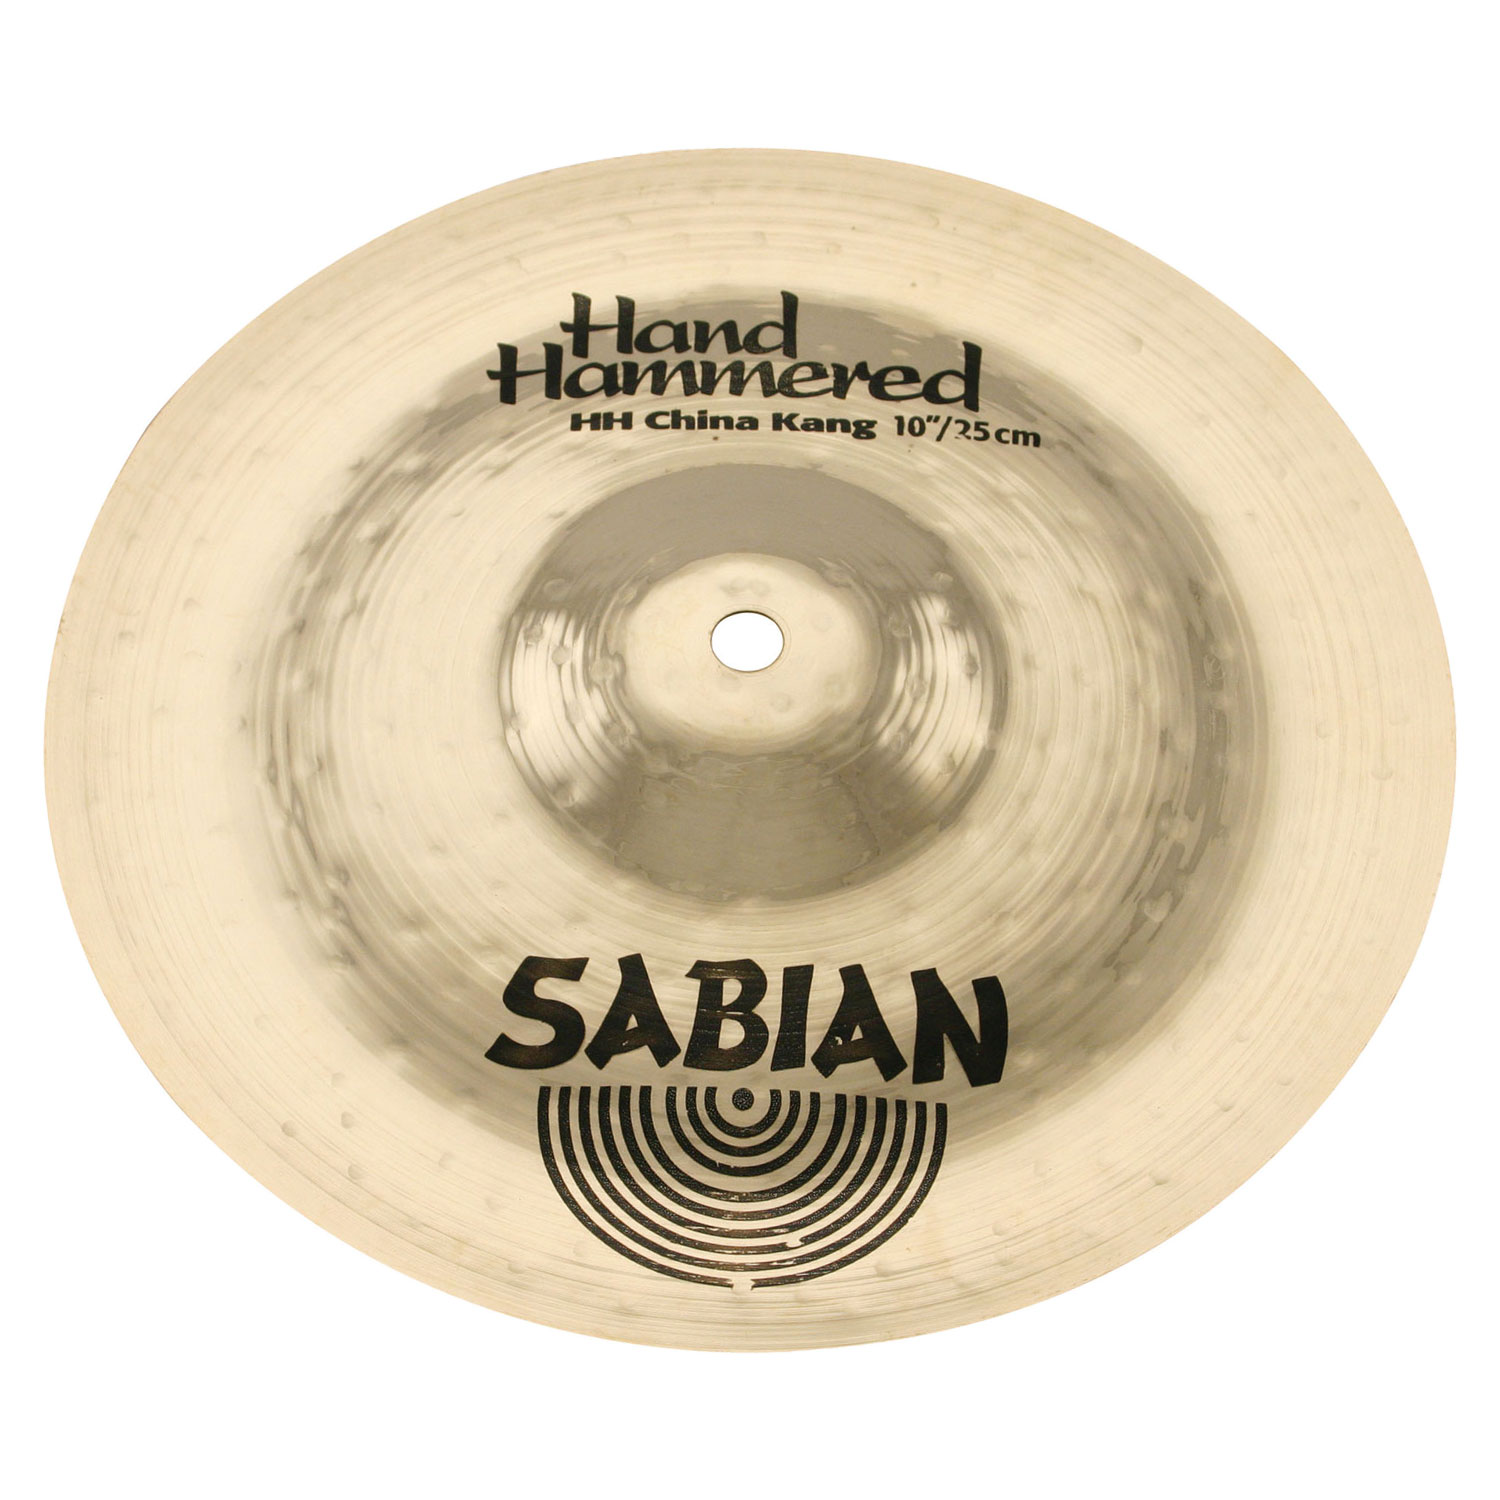 "Sabian 10"" HH China Kang Cymbal"